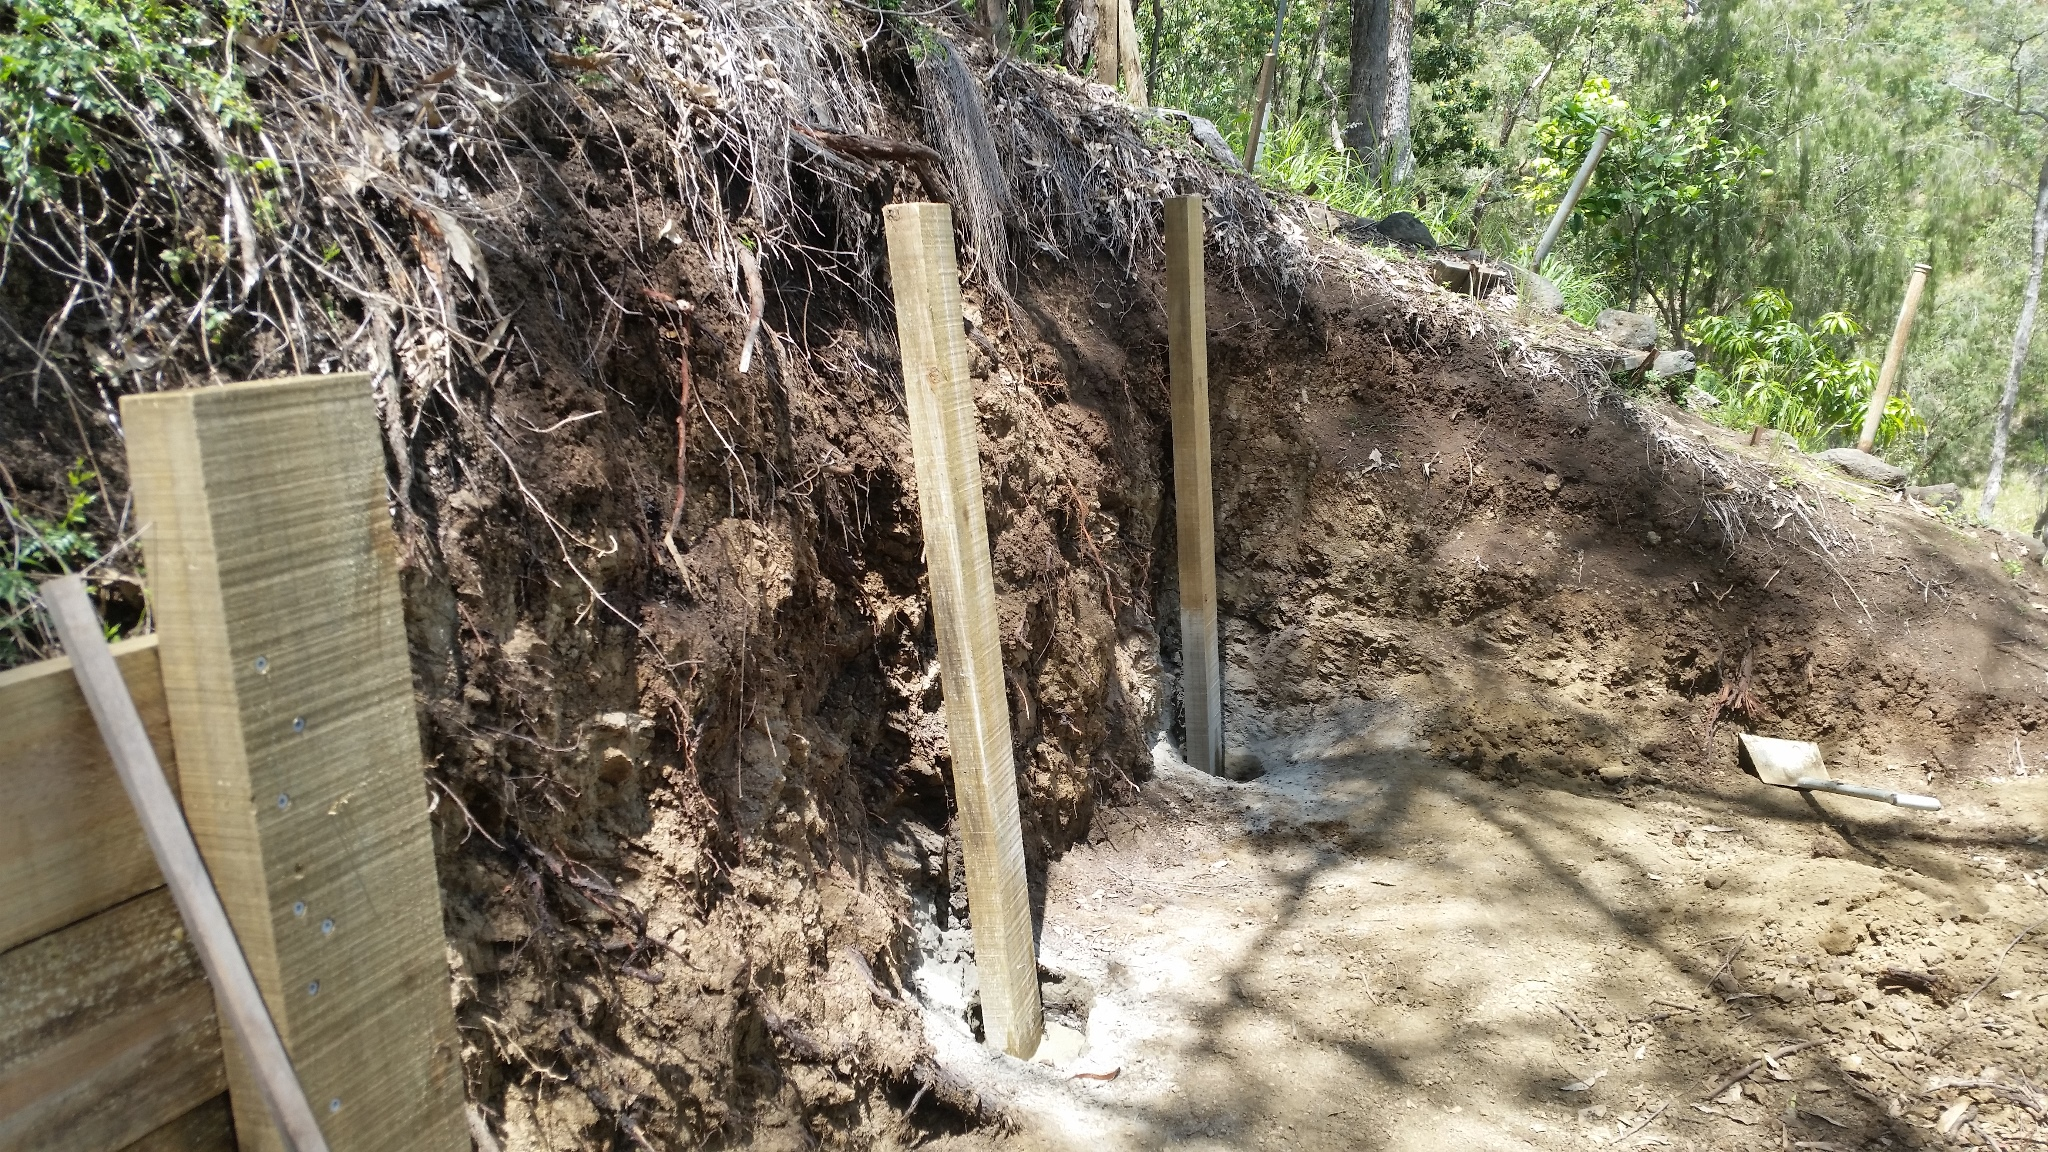 Posts for the Compost Wall